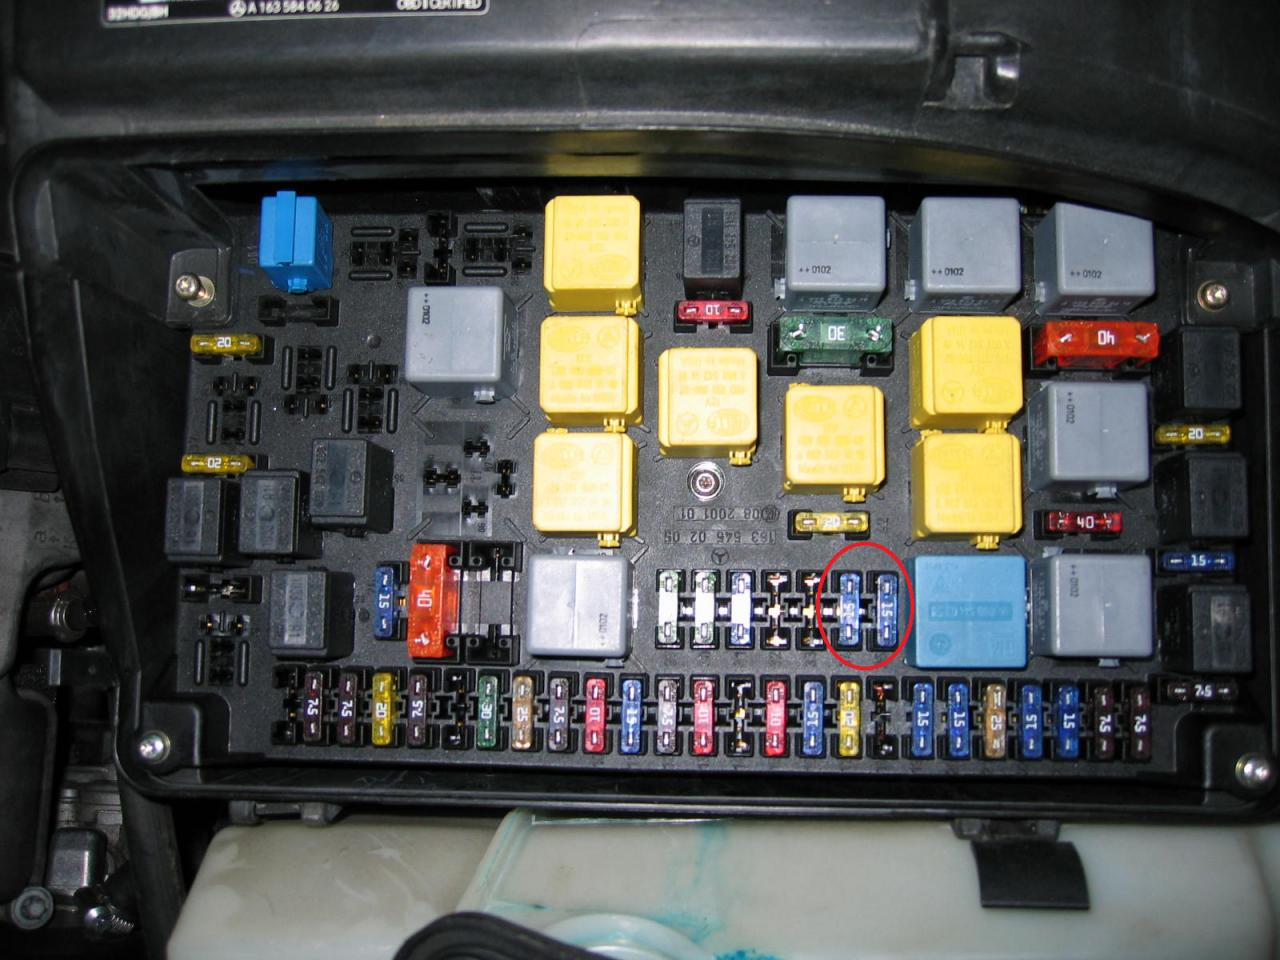 Mercedes Ml320 Fuse Box Archive Of Automotive Wiring Diagram 2008 2000 Starting Know About Rh Prezzy Co Benz